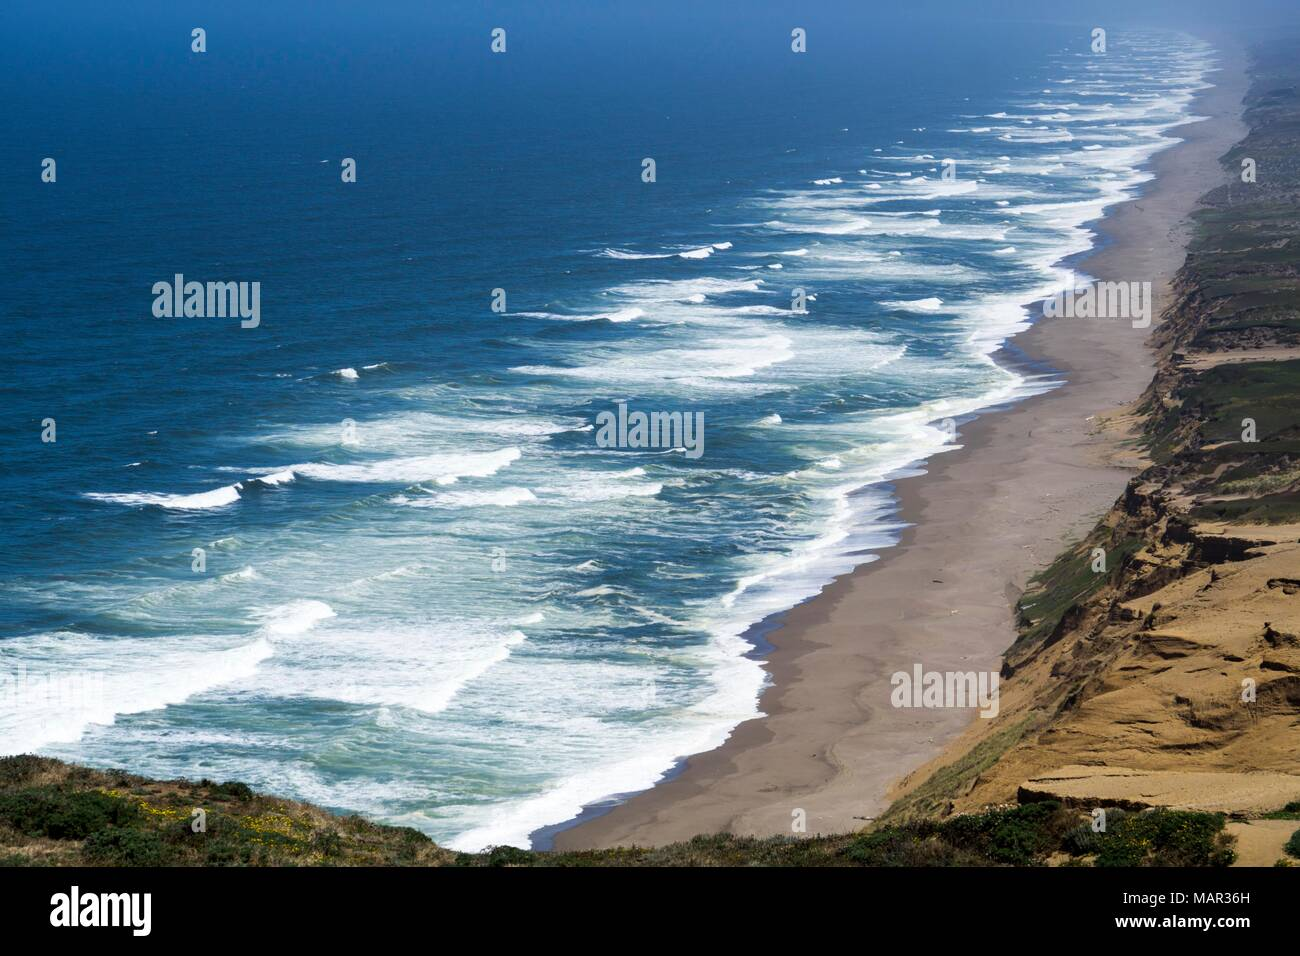 Point Reyes, National Seashore, California, United States of America, North America - Stock Image